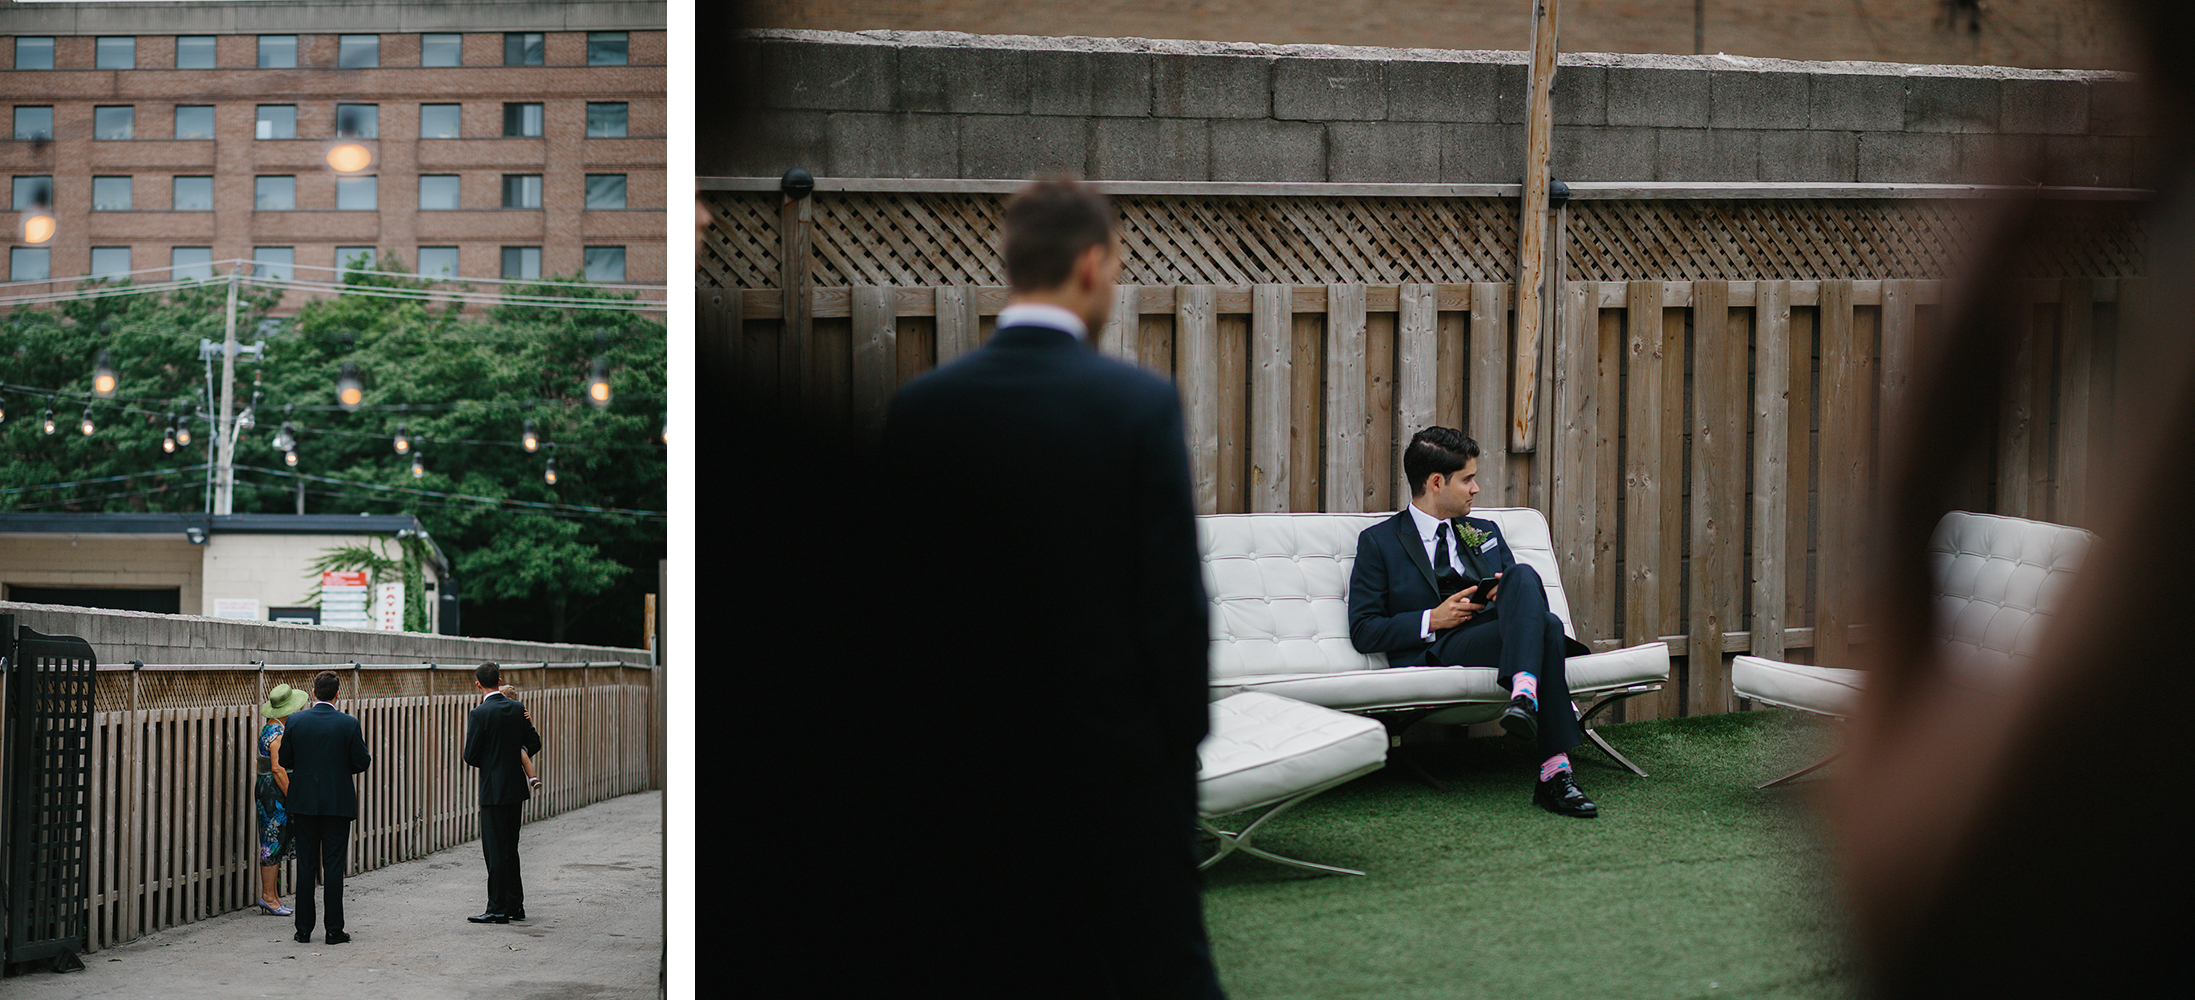 downtown-toronto-wedding-photographer-ryanne-hollies-photography-airship37-distillery-district-wedding-day-modern-minimalist-venues-in-toronto-cool-trendy-hipster-party-bus-outdoor-patio-graffiti-groomsman-waiting-sitting.jpg